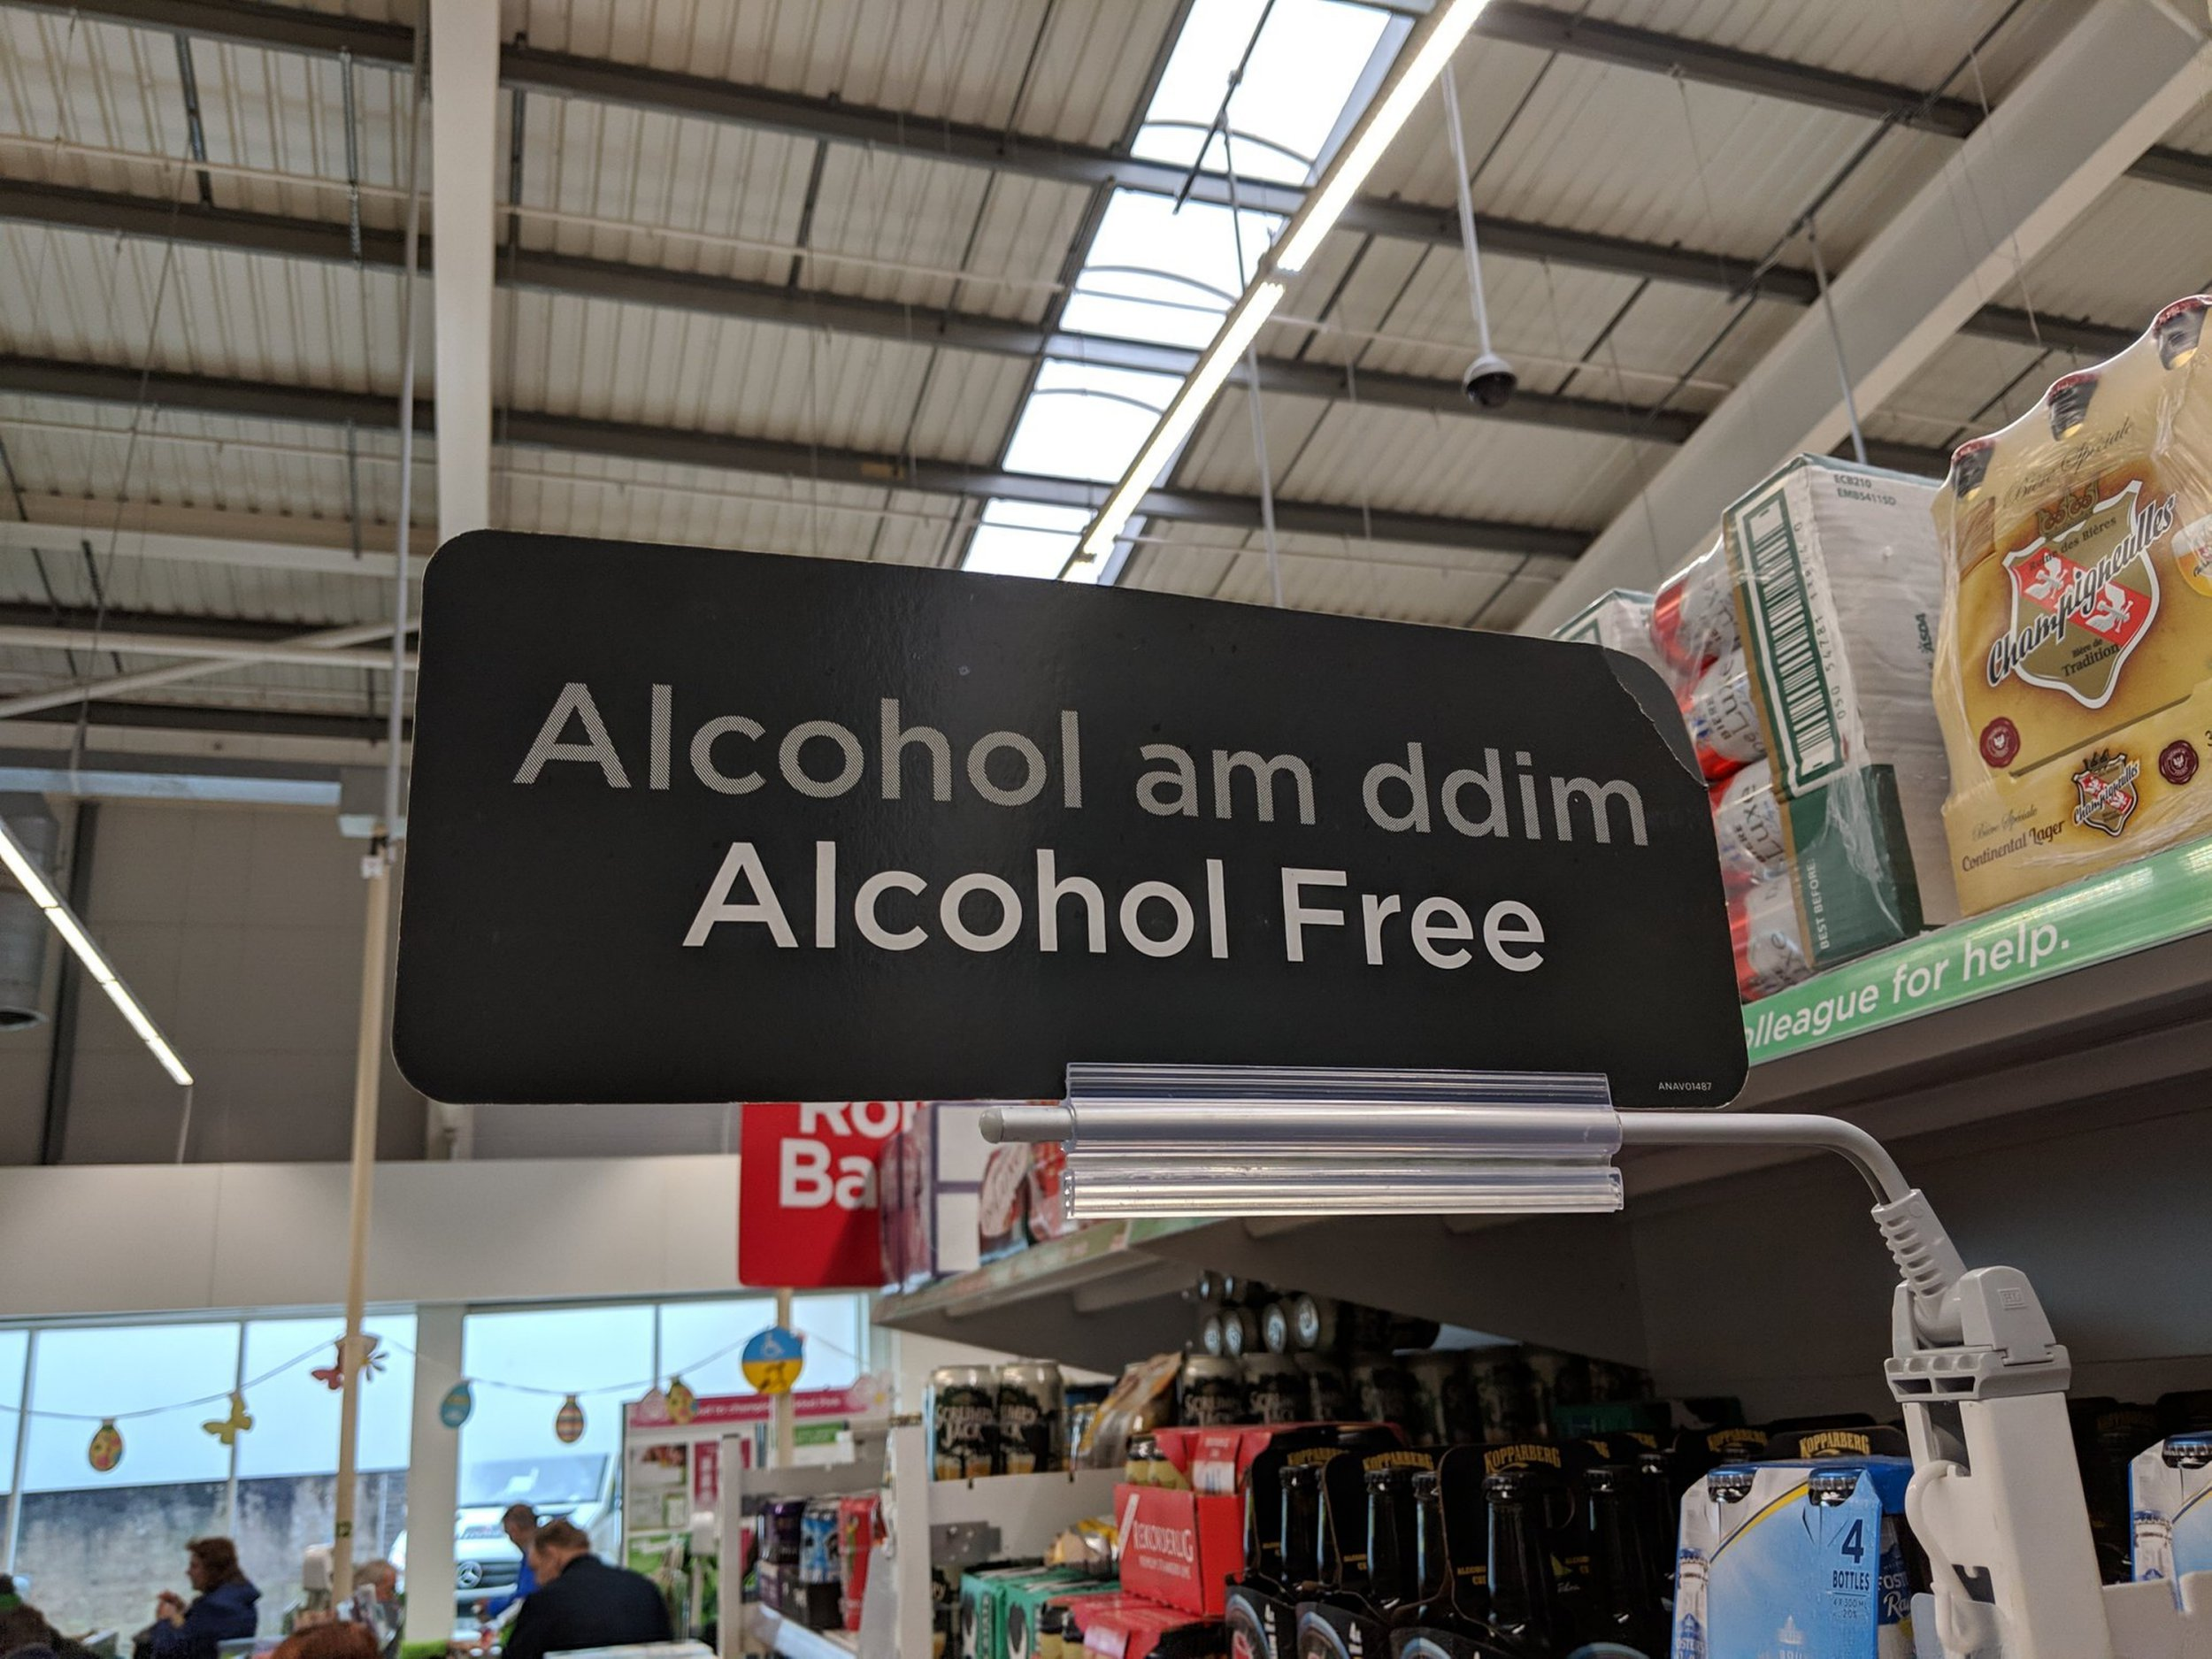 Asda offers 'free alcohol' in translation blunder